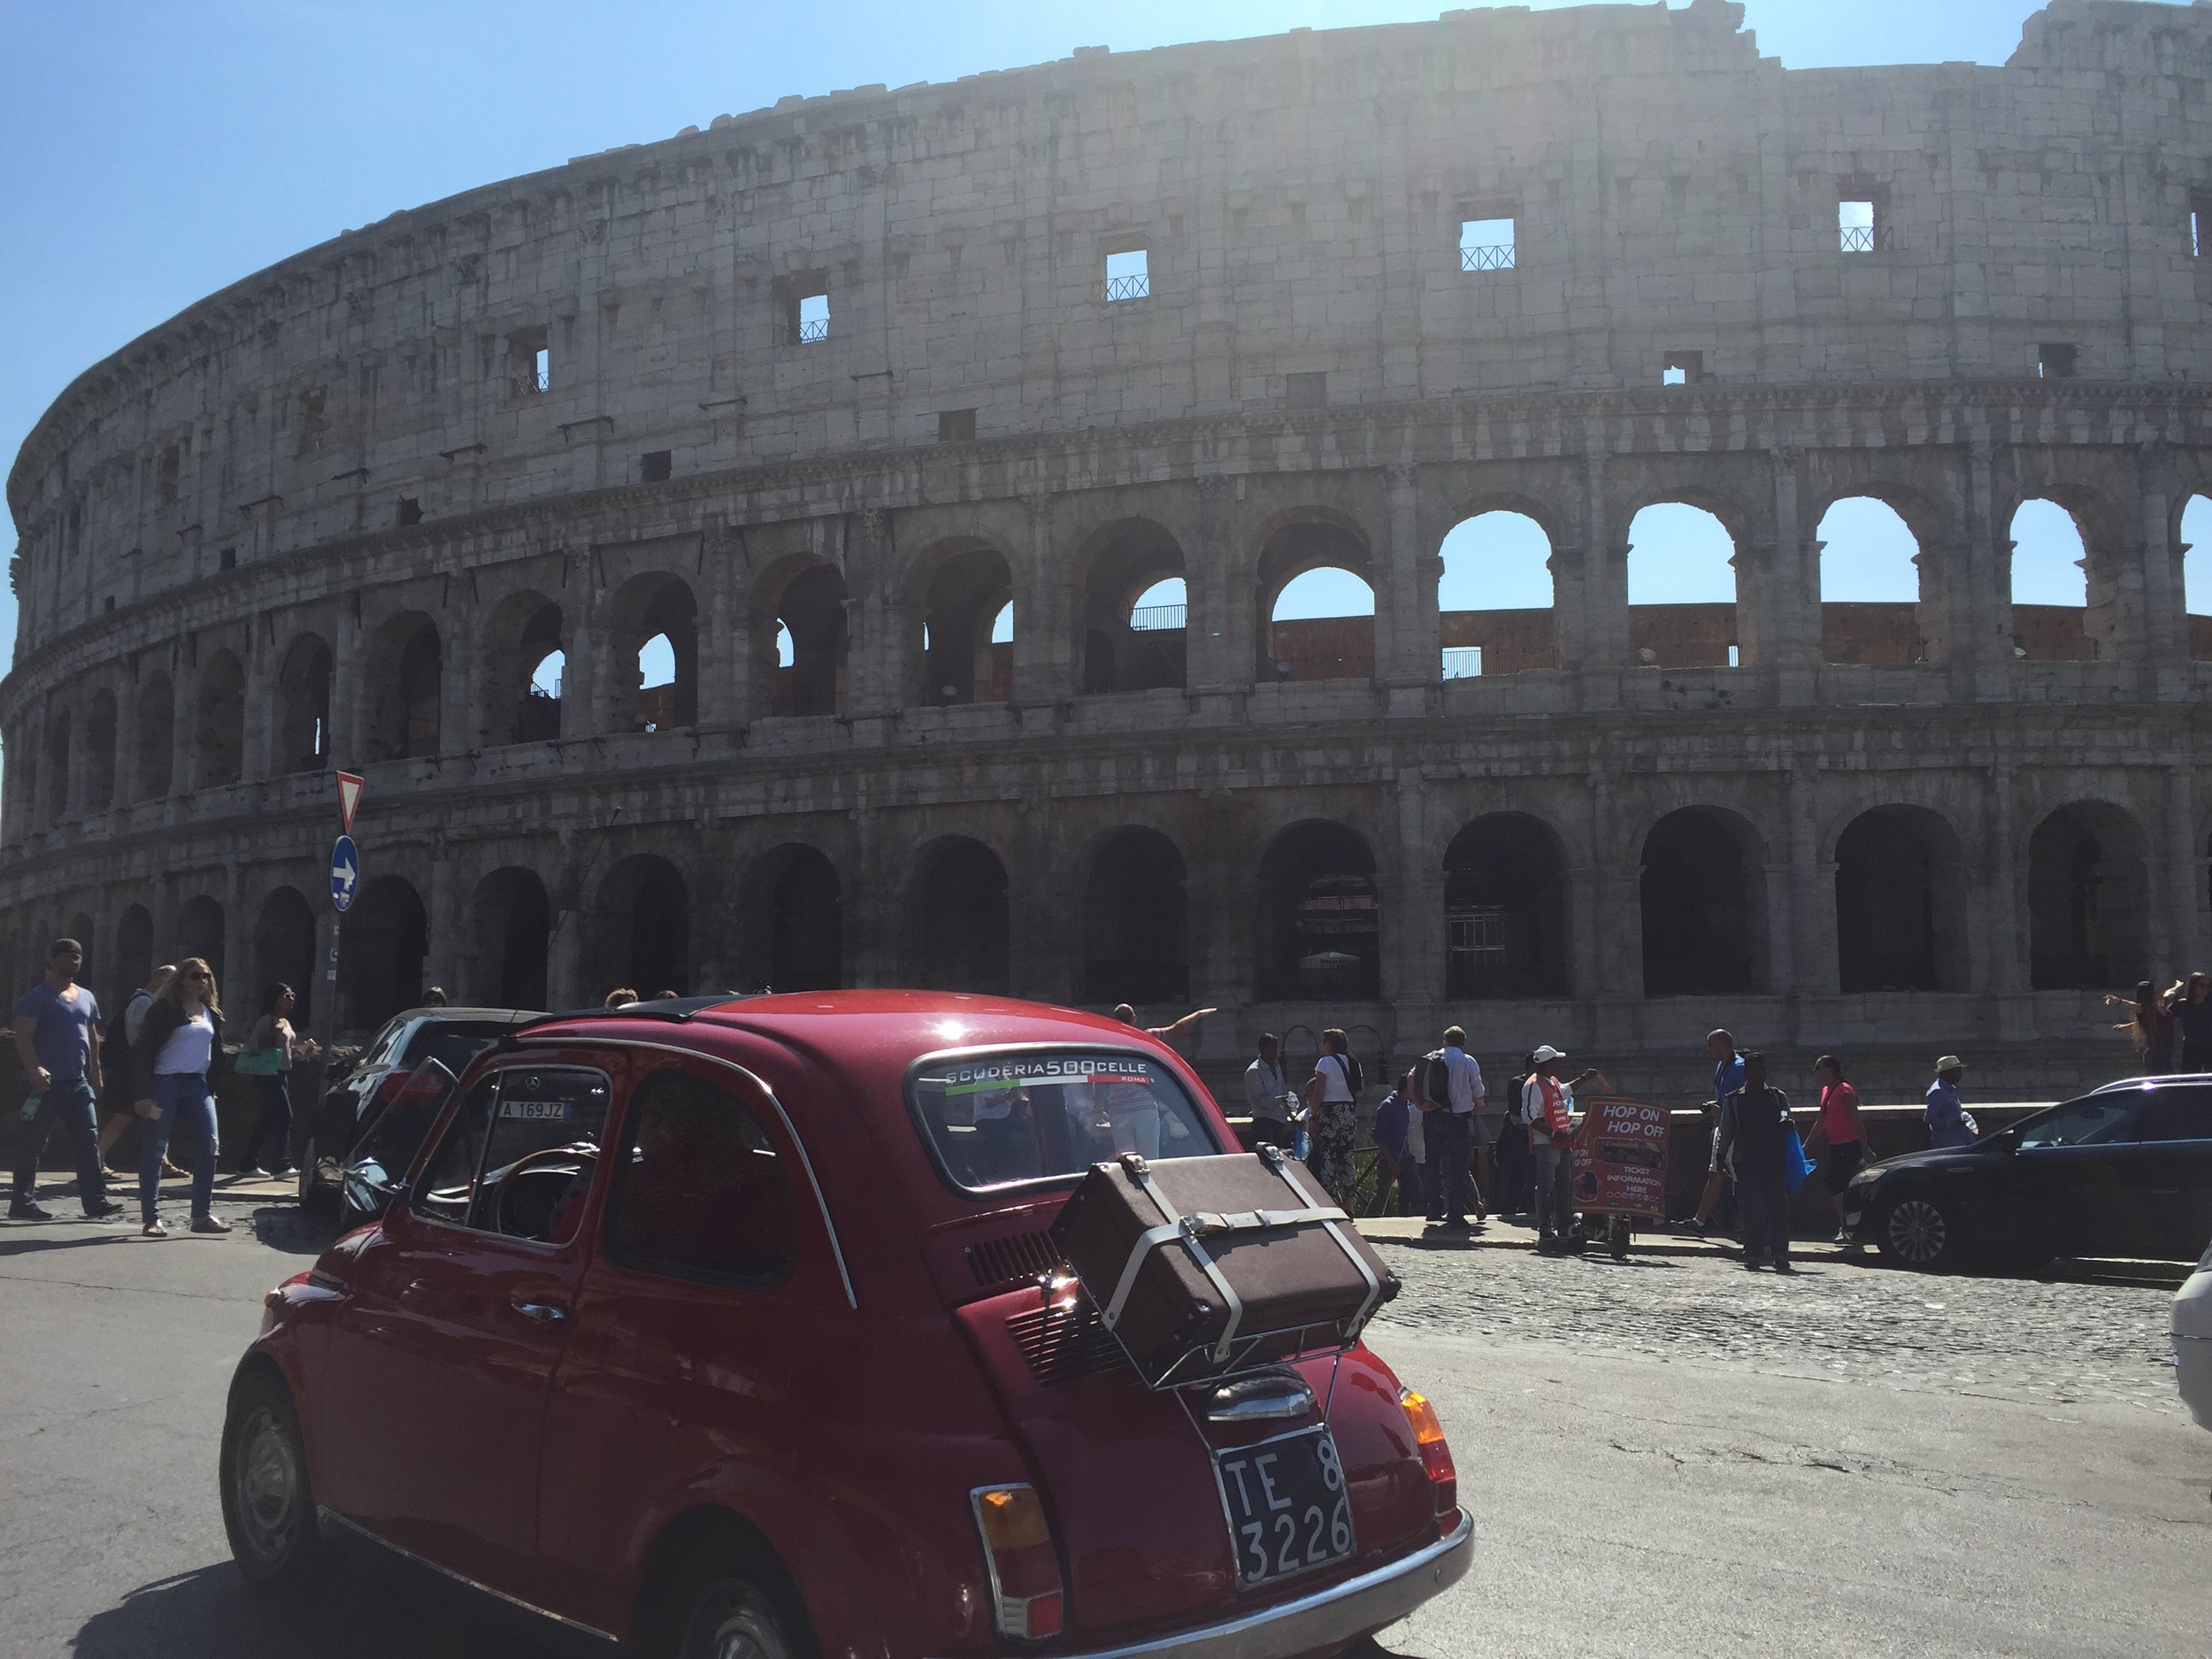 A perfectly restored Fiat cinquecento (500) driving alongside of us in Rome.